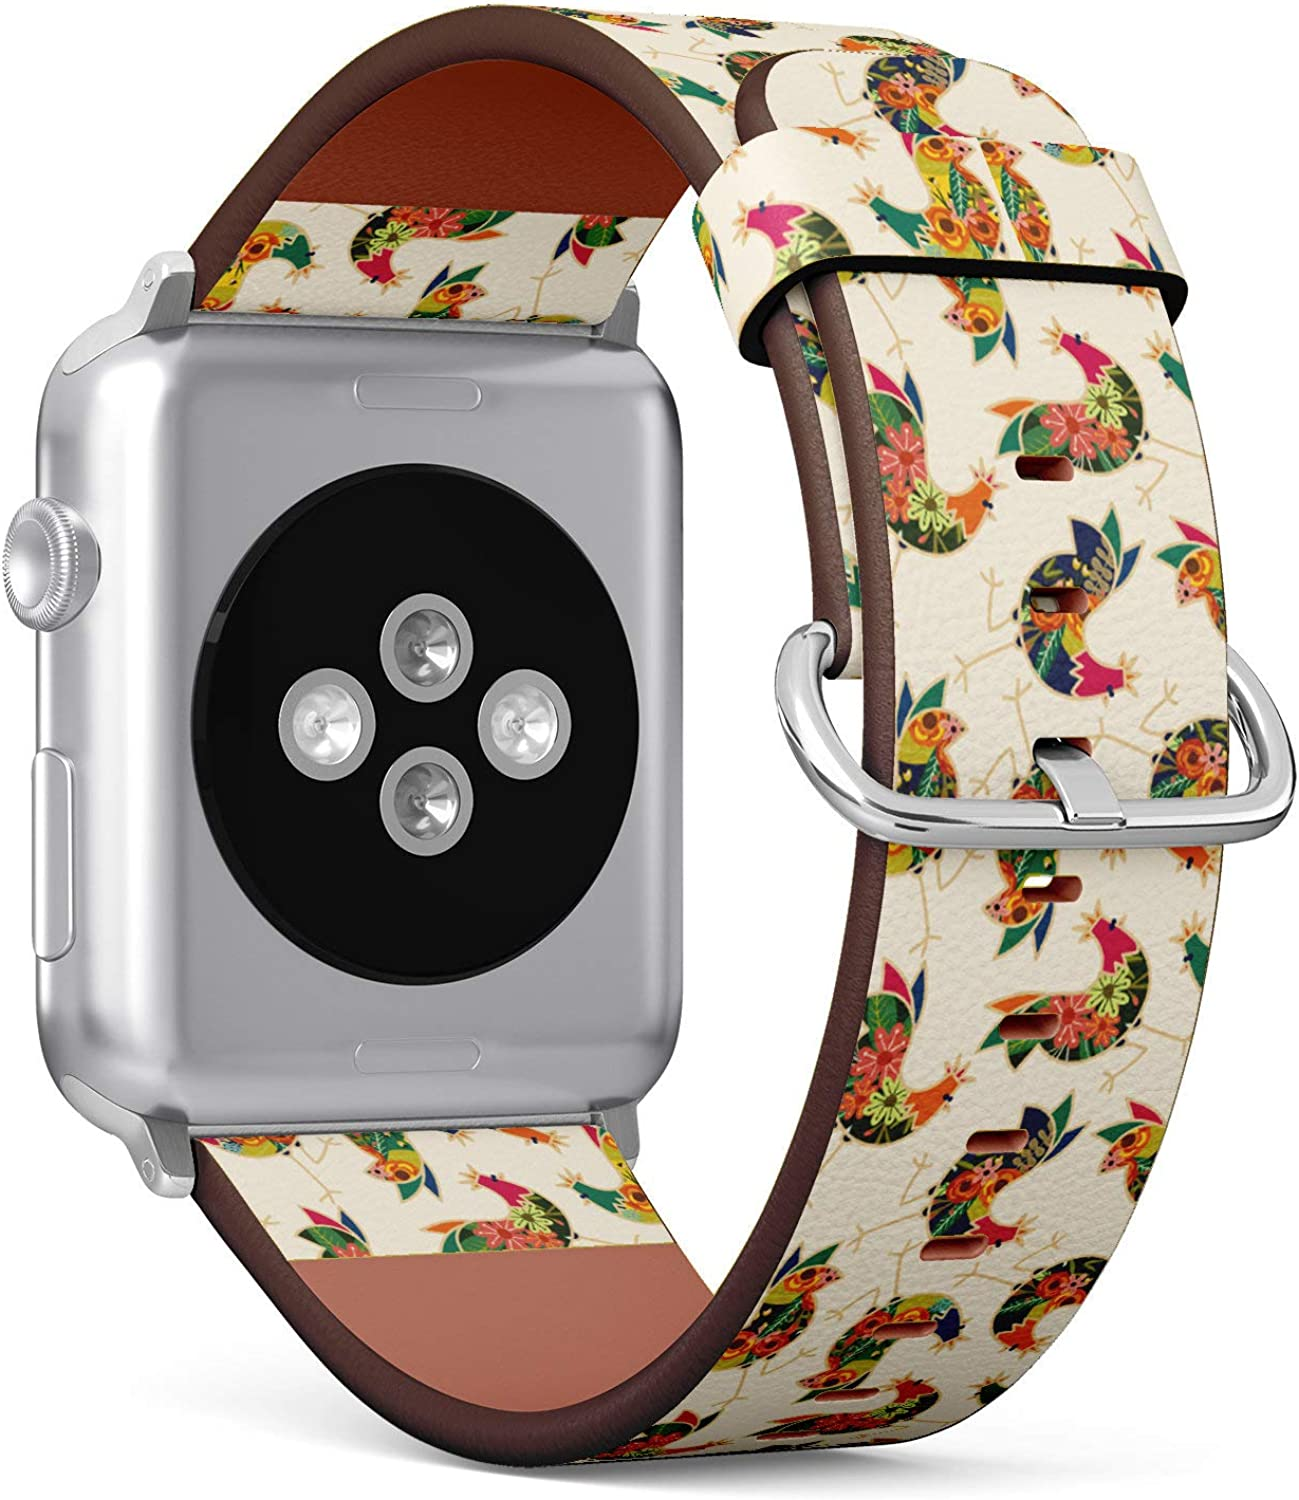 (Floral Chicken Rooster Seamless Pattern) Patterned Leather Wristband Strap Compatible with Apple Watch Series 4/3/2/1 gen,Replacement of iWatch 38mm / 40mm Bands